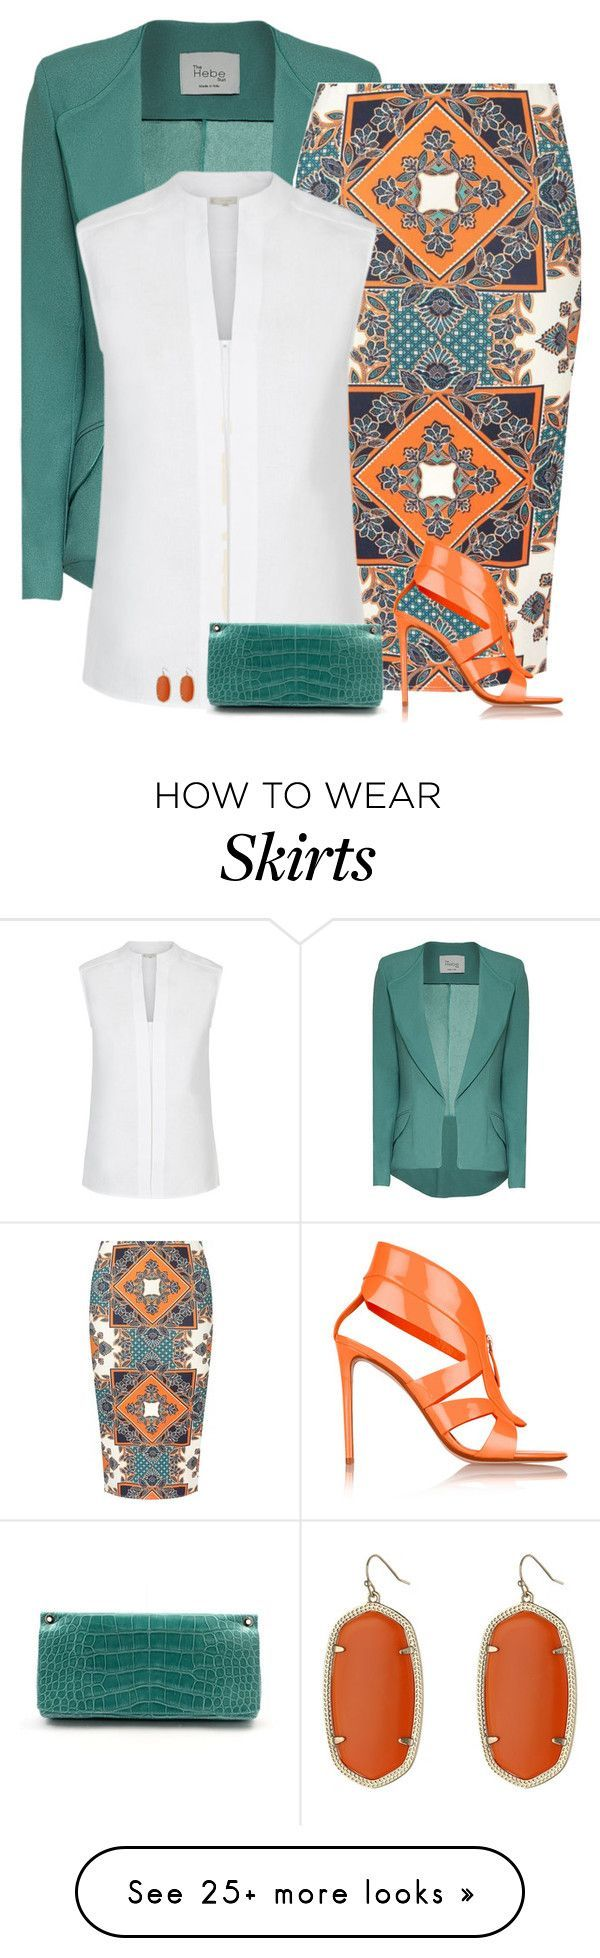 """Tuesday"" by divacrafts on Polyvore featuring Dorothy Perkins, Hobbs, Nicholas Kirkwood, Jimmy Choo, Kendra Scott and Original"